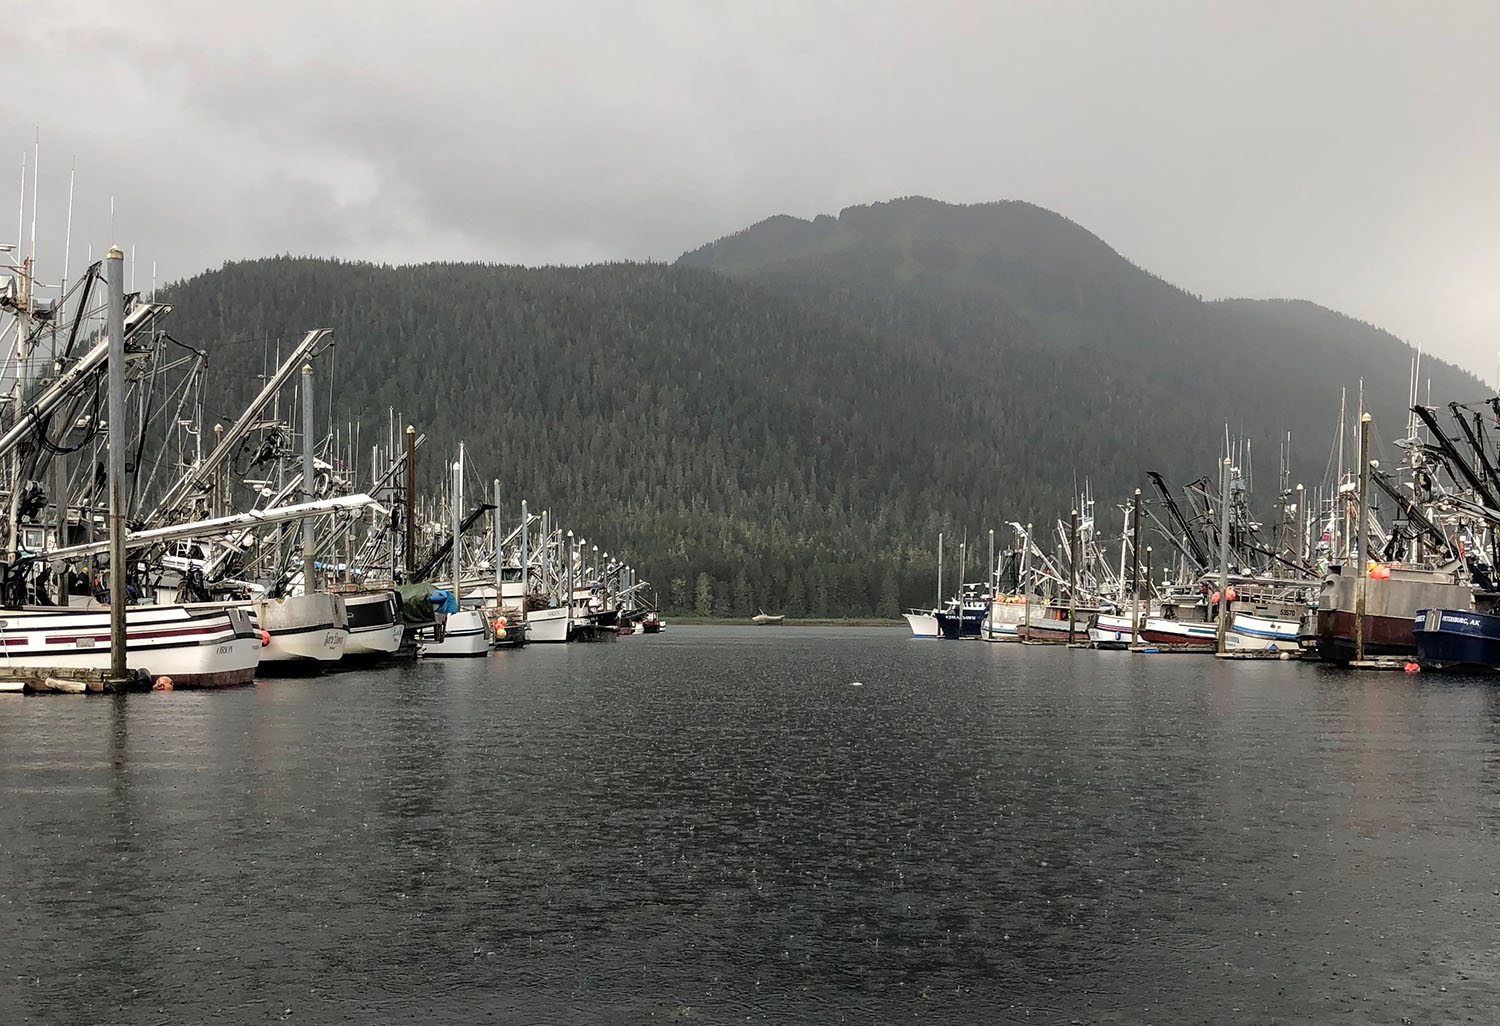 Fishing boats on a rainy day in Alaska